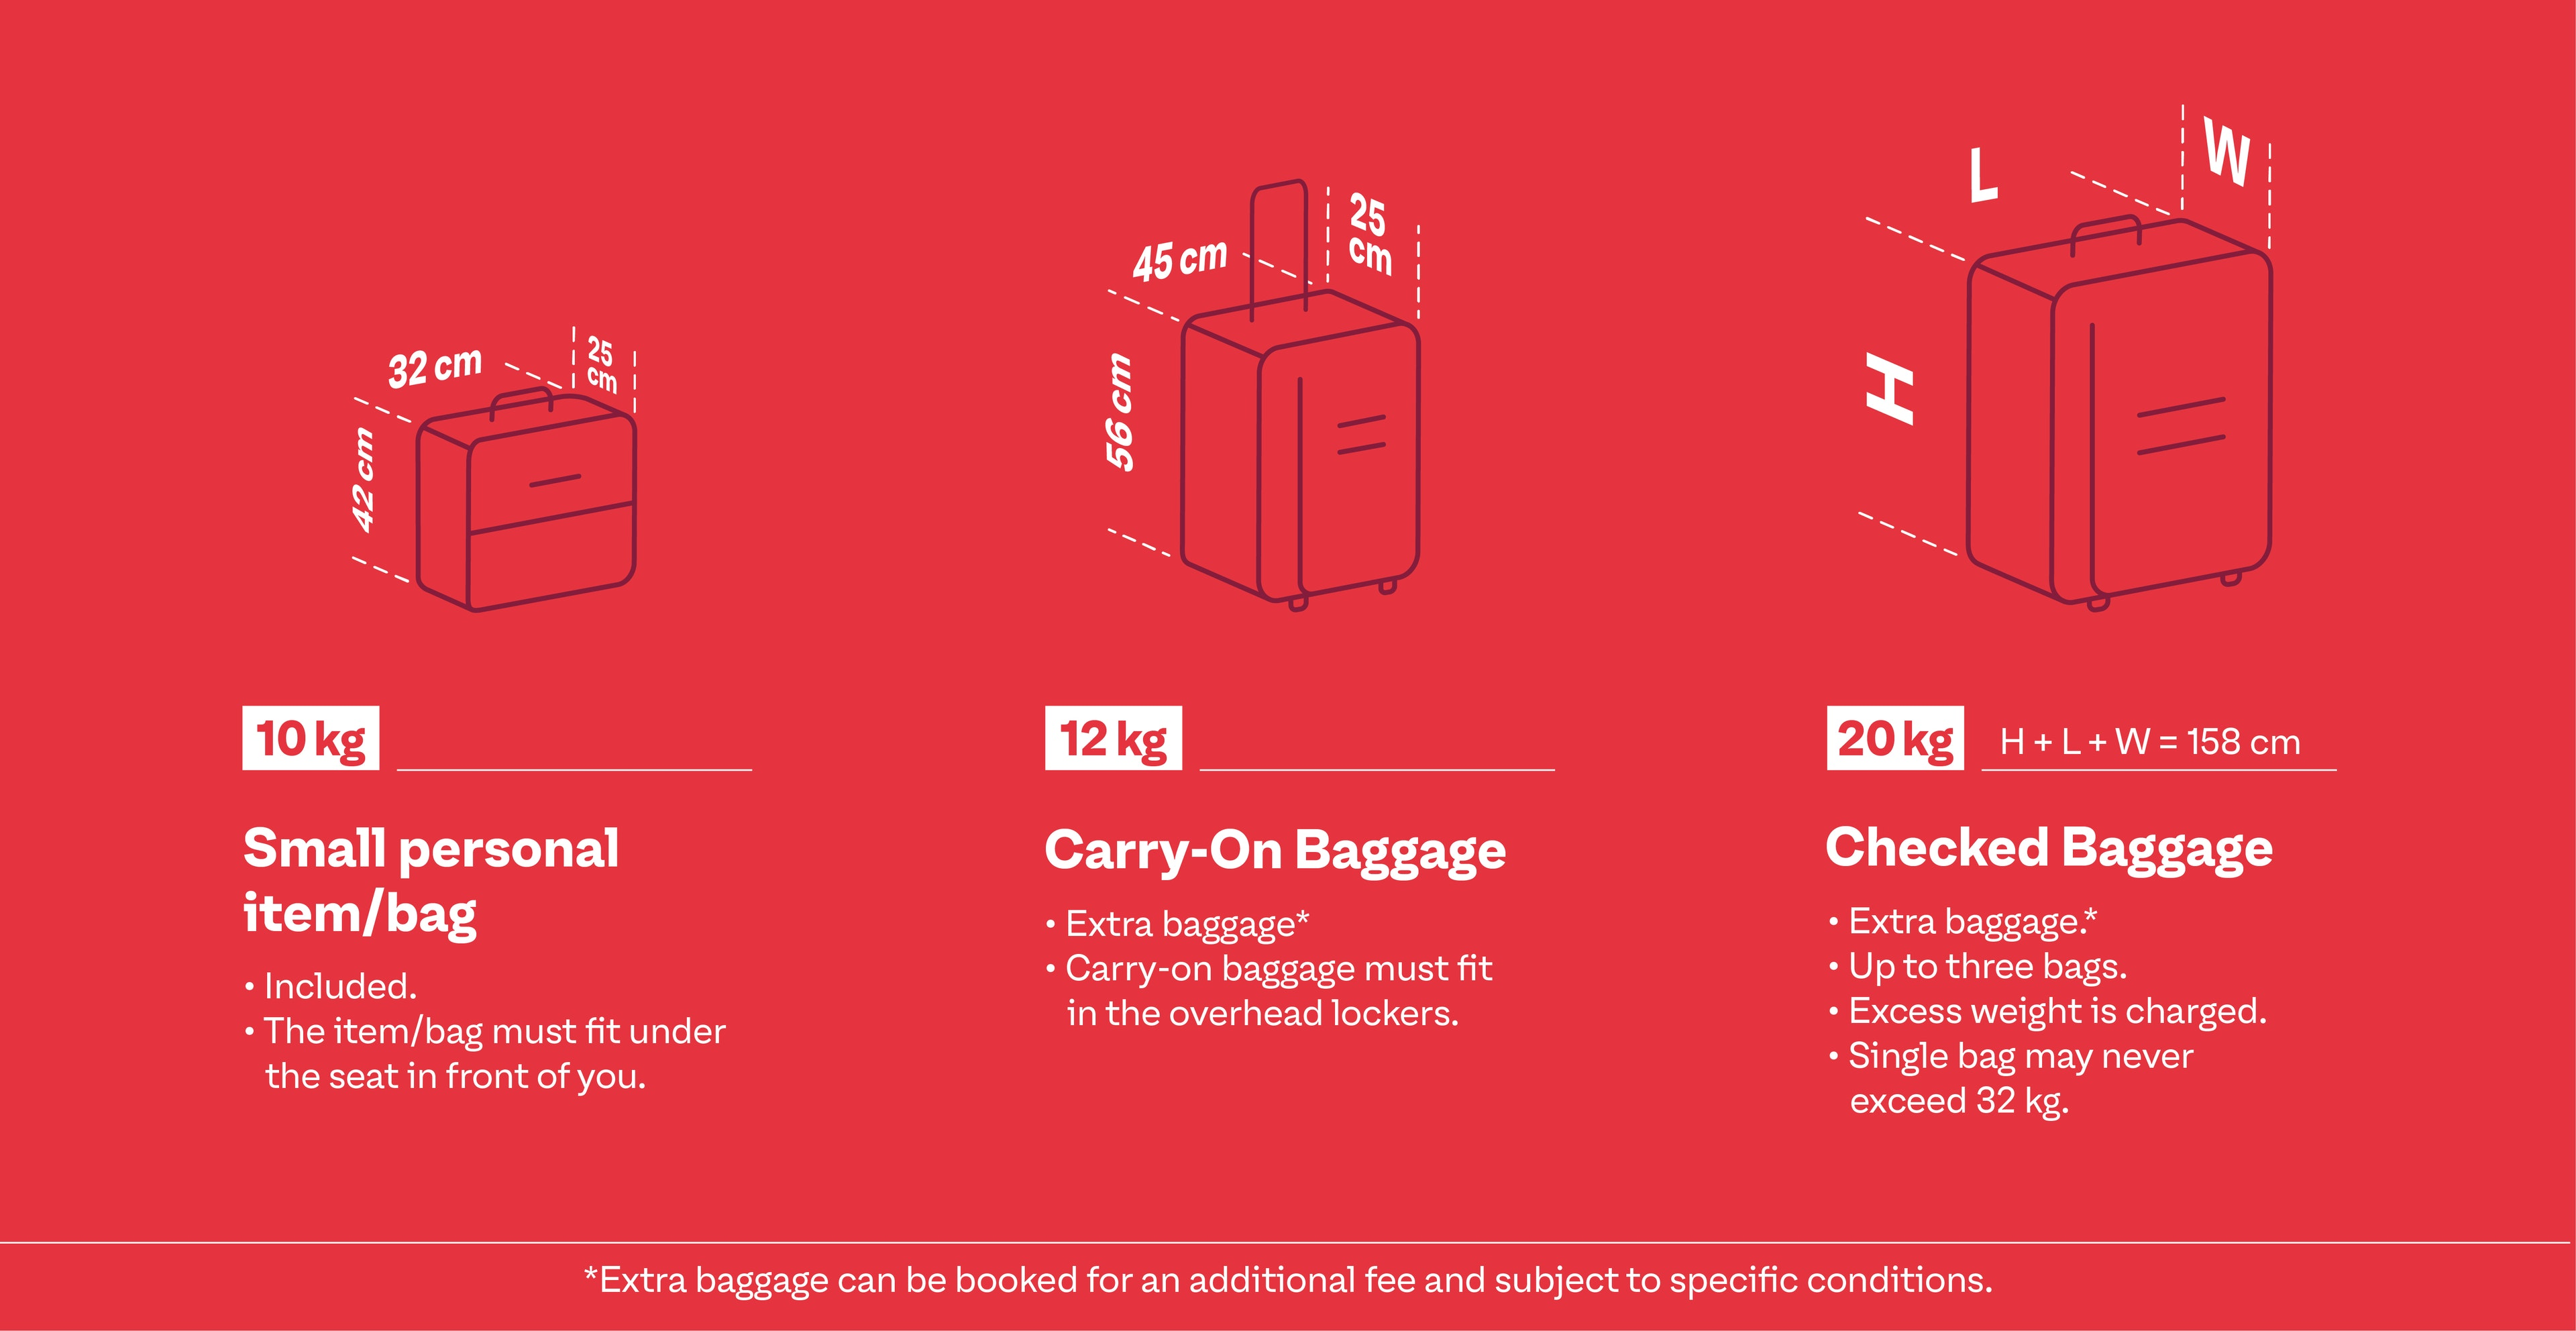 The Passenger's Guide to Baggage